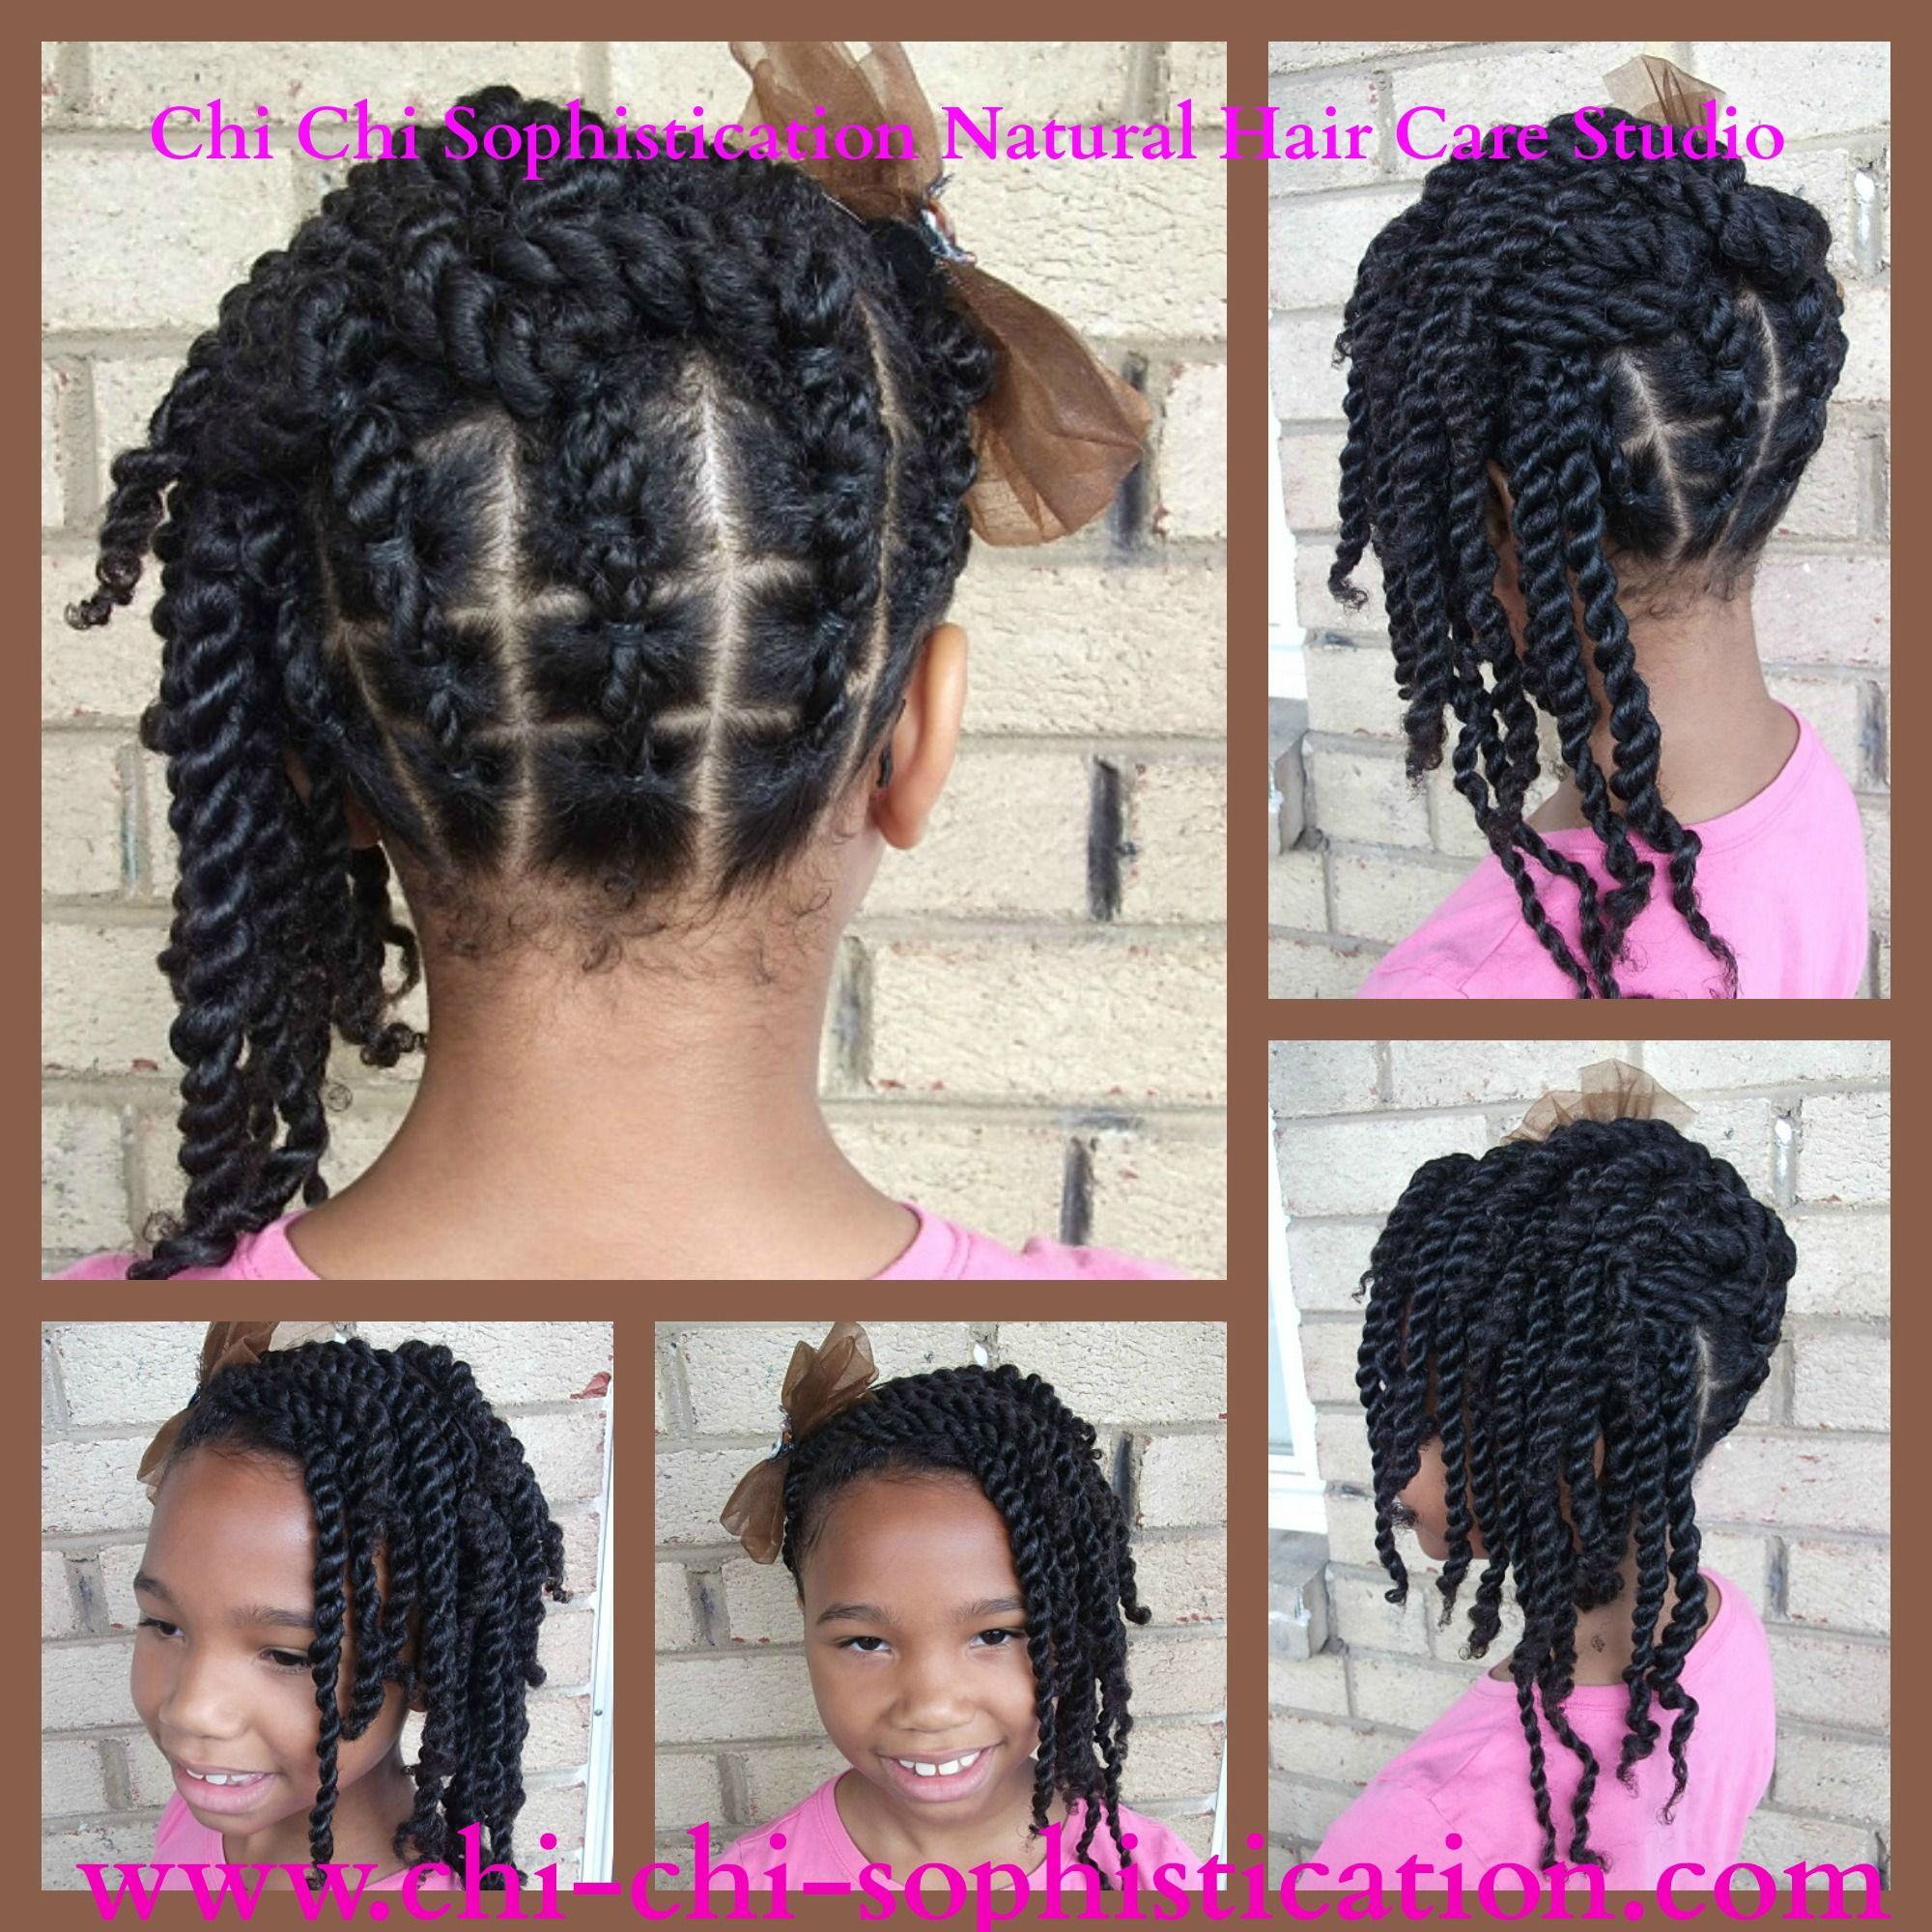 Ponytails Styled Into A Double Strand Twist Up Do Lil Girl